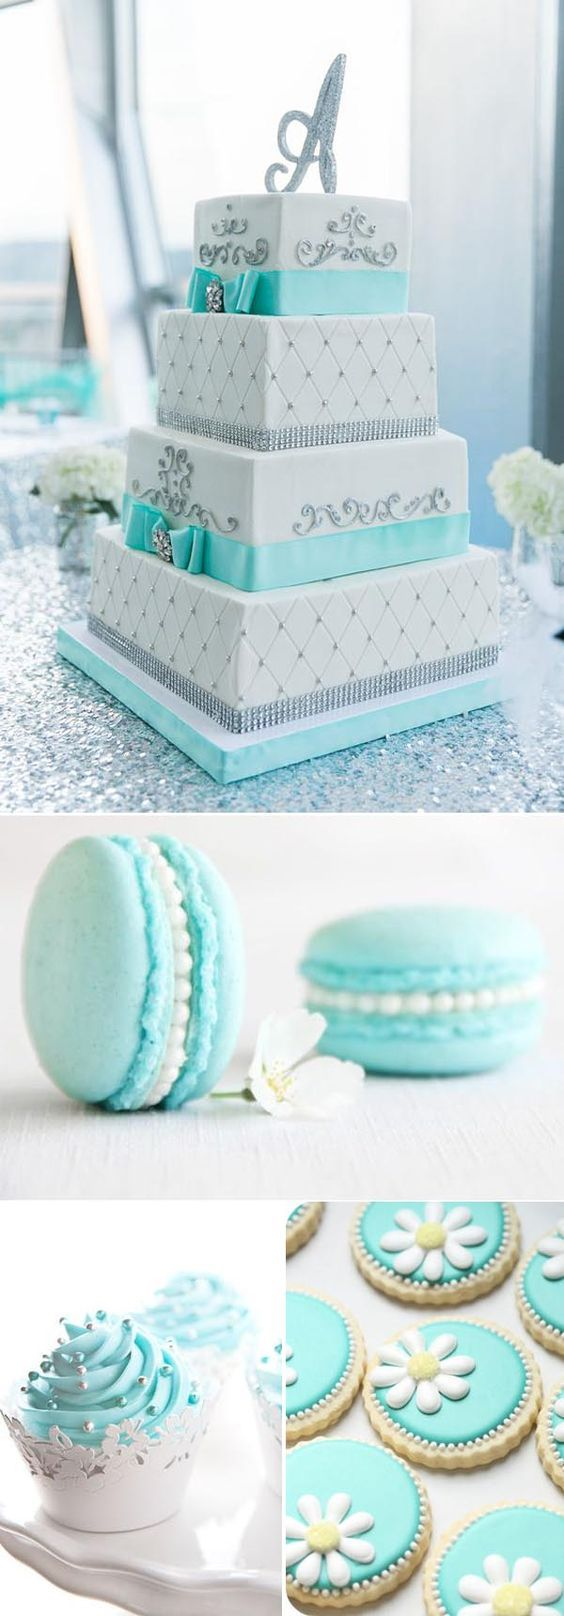 Awesome Ideas For Your Tiffany Blue Themed Wedding #Cocomelody